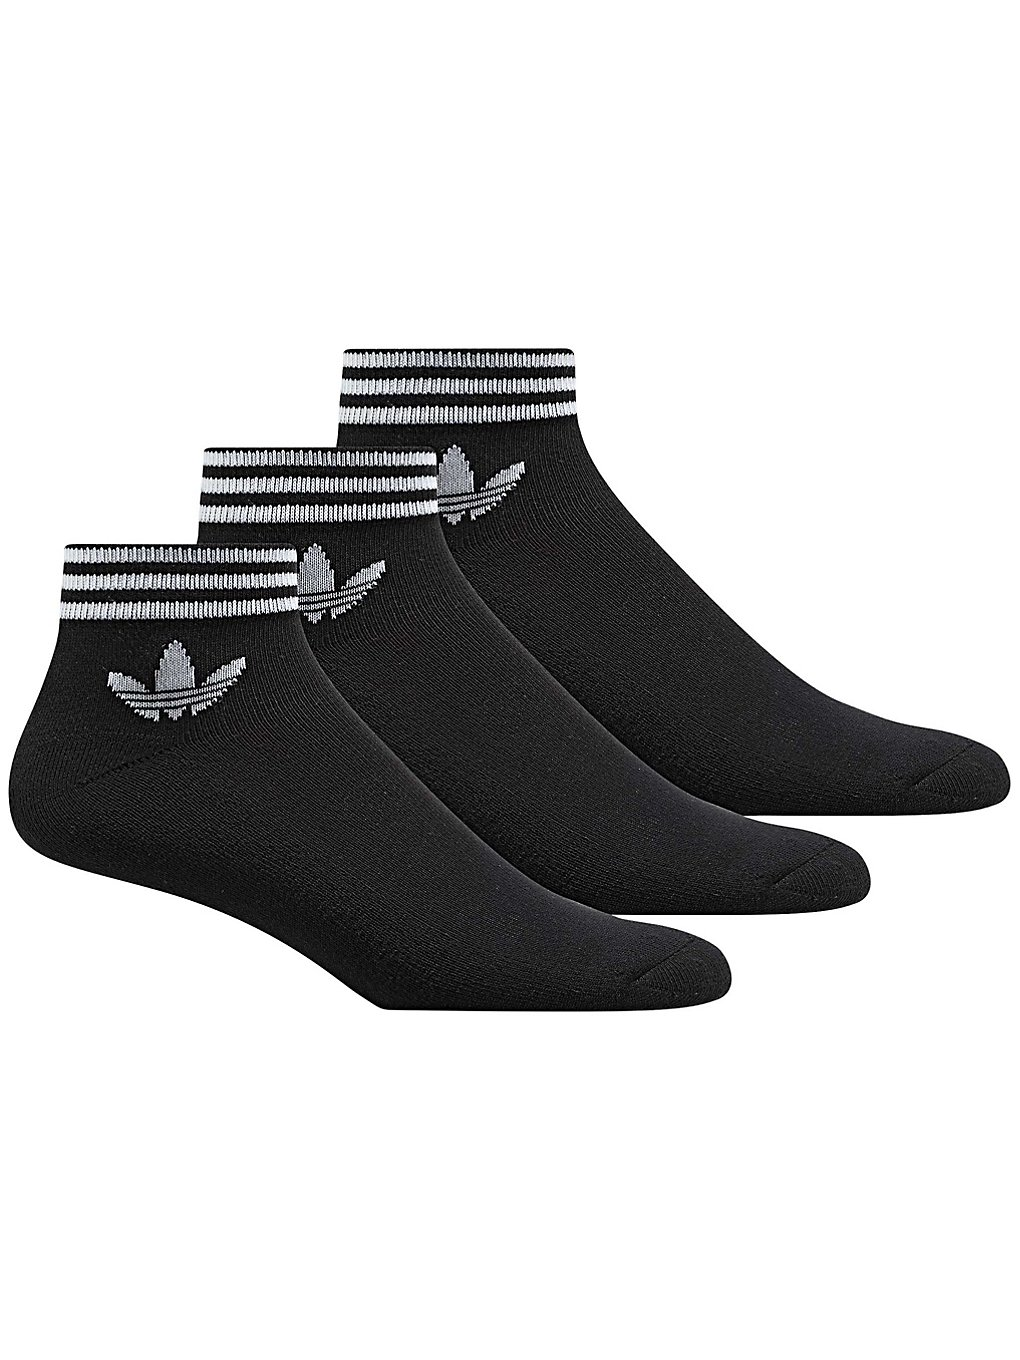 factory outlets 100% top quality 2018 sneakers adidas Originals Trefoil Ank Star Socks Socks black Gr. 43 ...